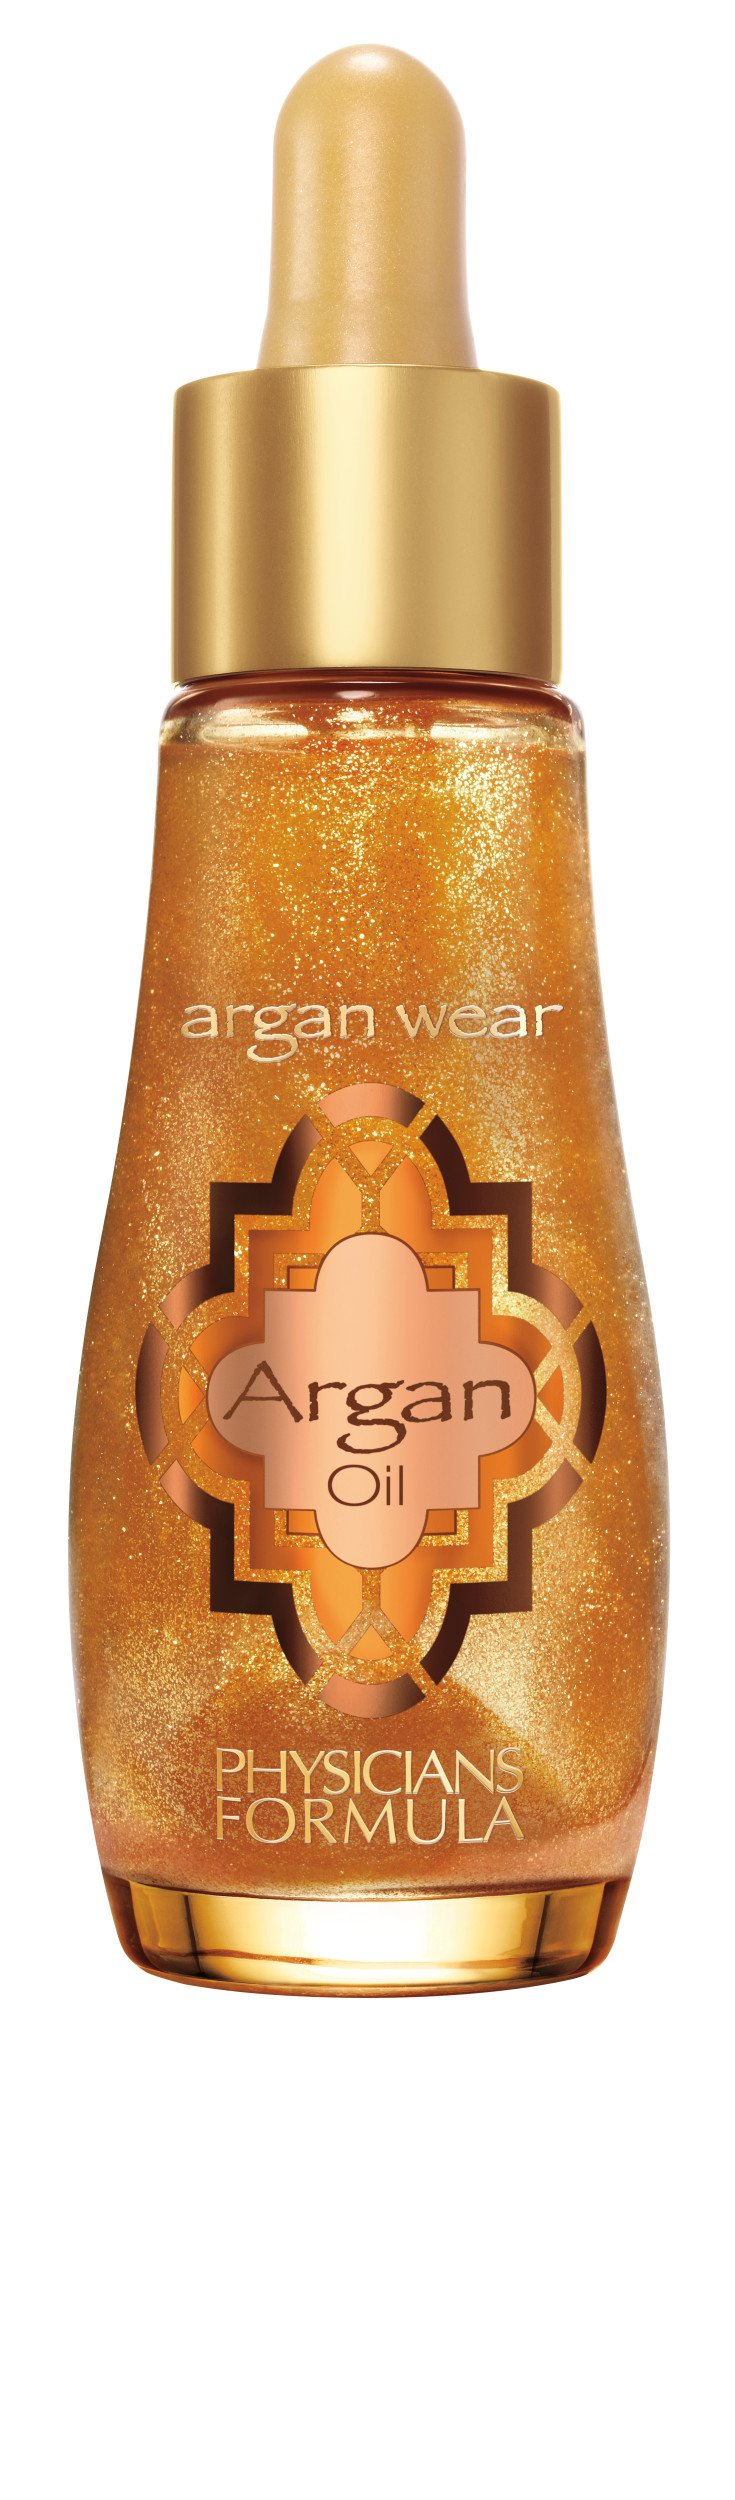 Physicians Formula Argan Wear Ultra-nourishing Illuminating Argan Oil, Touch of Gold, 1 Fluid Ounce by Physicians Formula (Image #1)